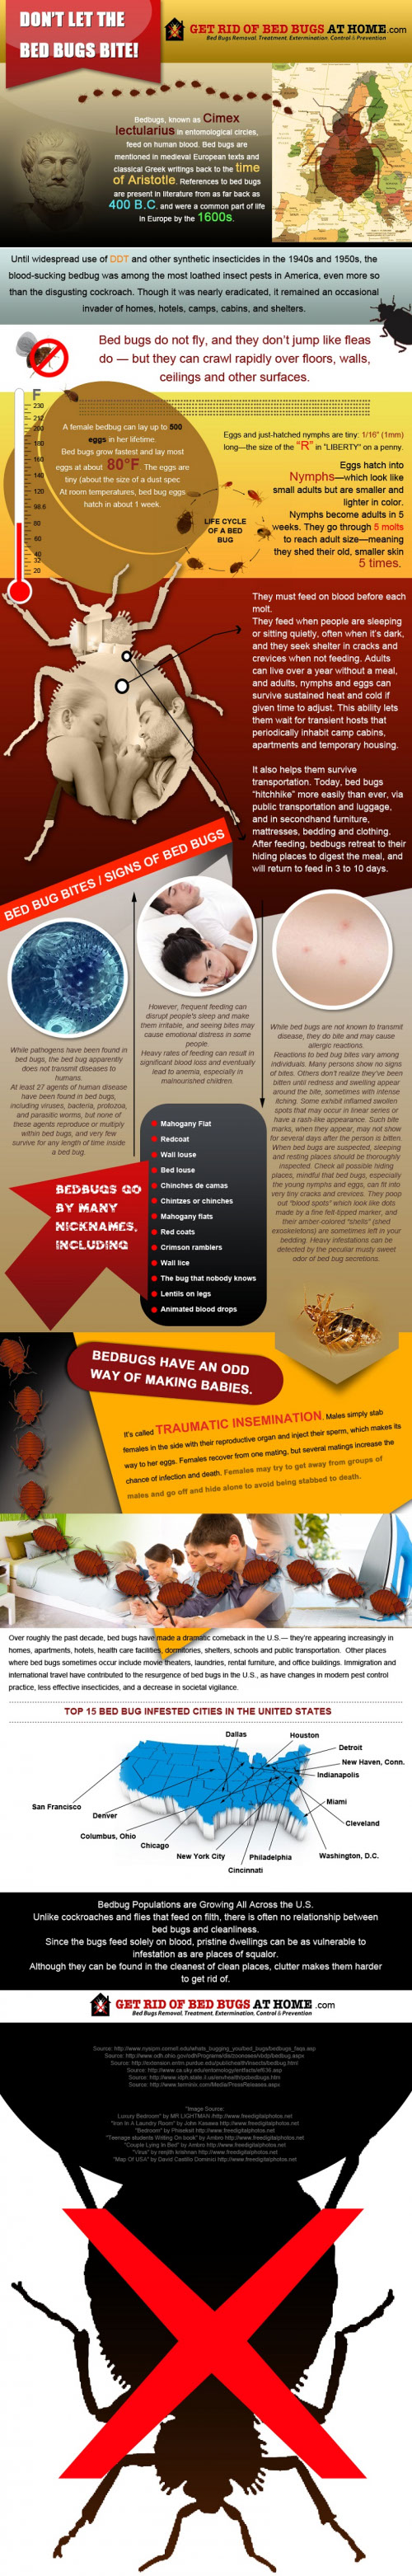 Fighting Bed Bugs-Infographic